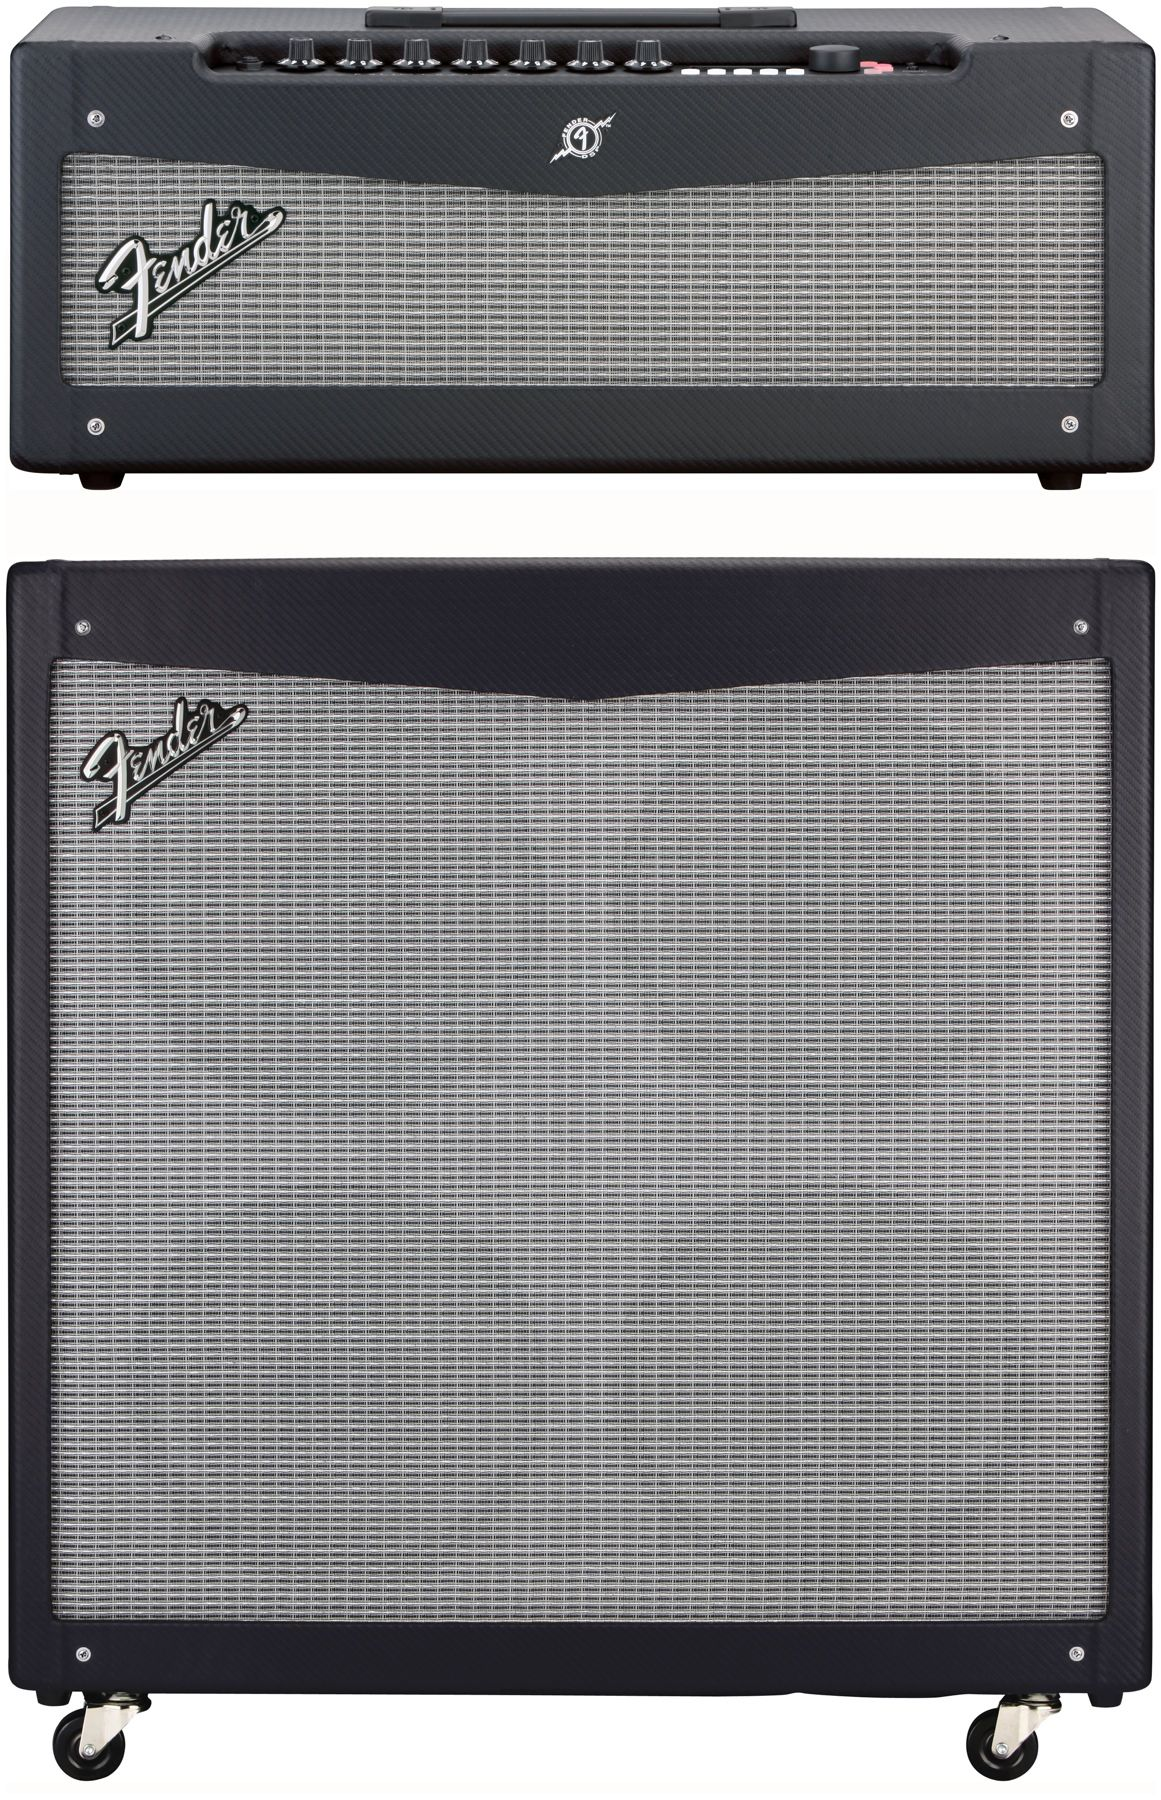 Fender Mustang V Head And 4x12 Cabinet Sweetwatercom Perhaps My 4 X 12 Speaker Wiring Diagram Next Amp Purchaseone Of These Days